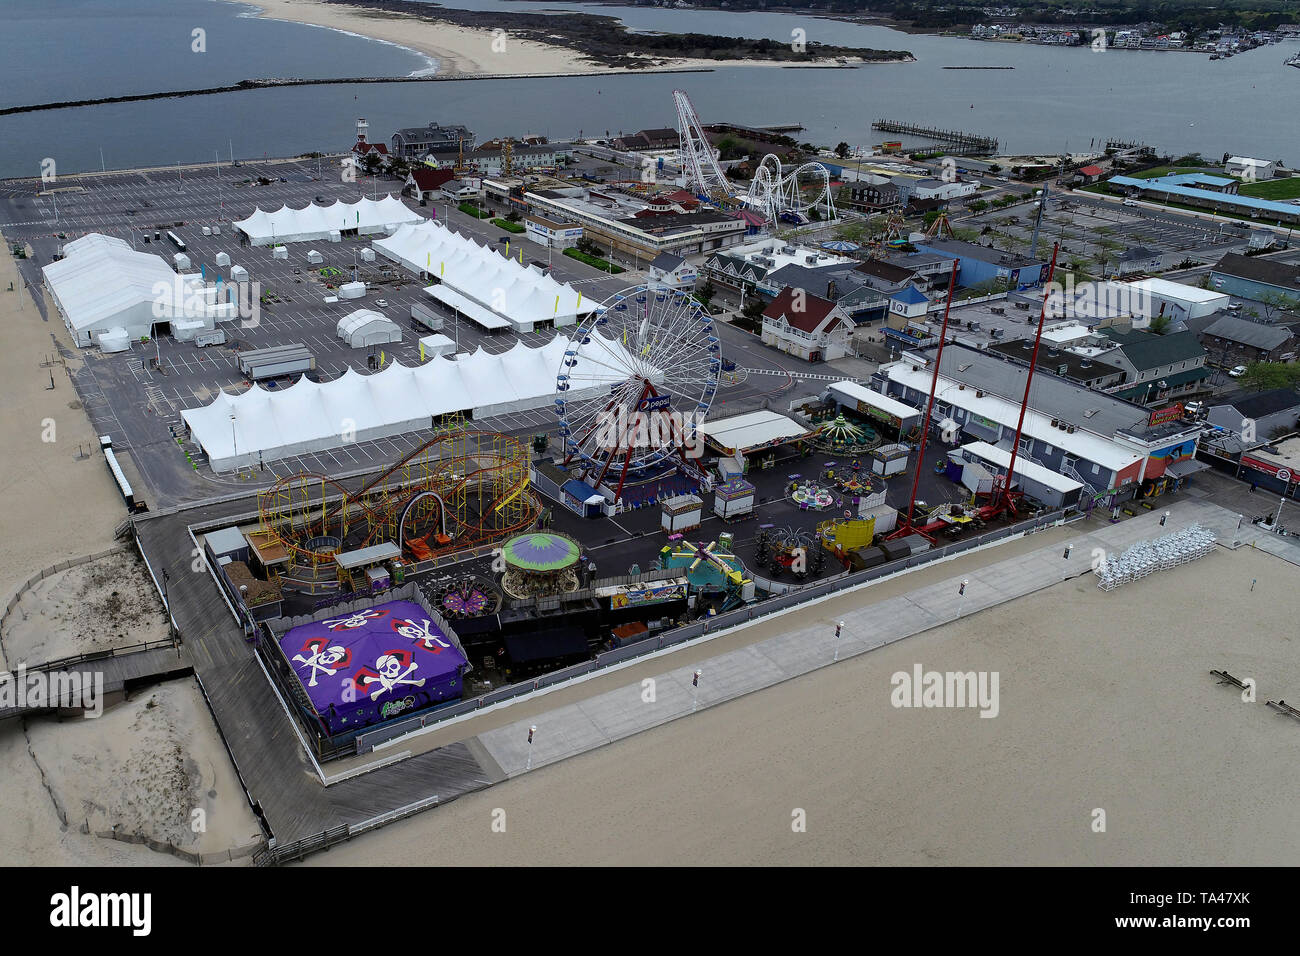 Aerial view of Boardwalk Amusement Park in Ocean City, Maryland - Stock Image